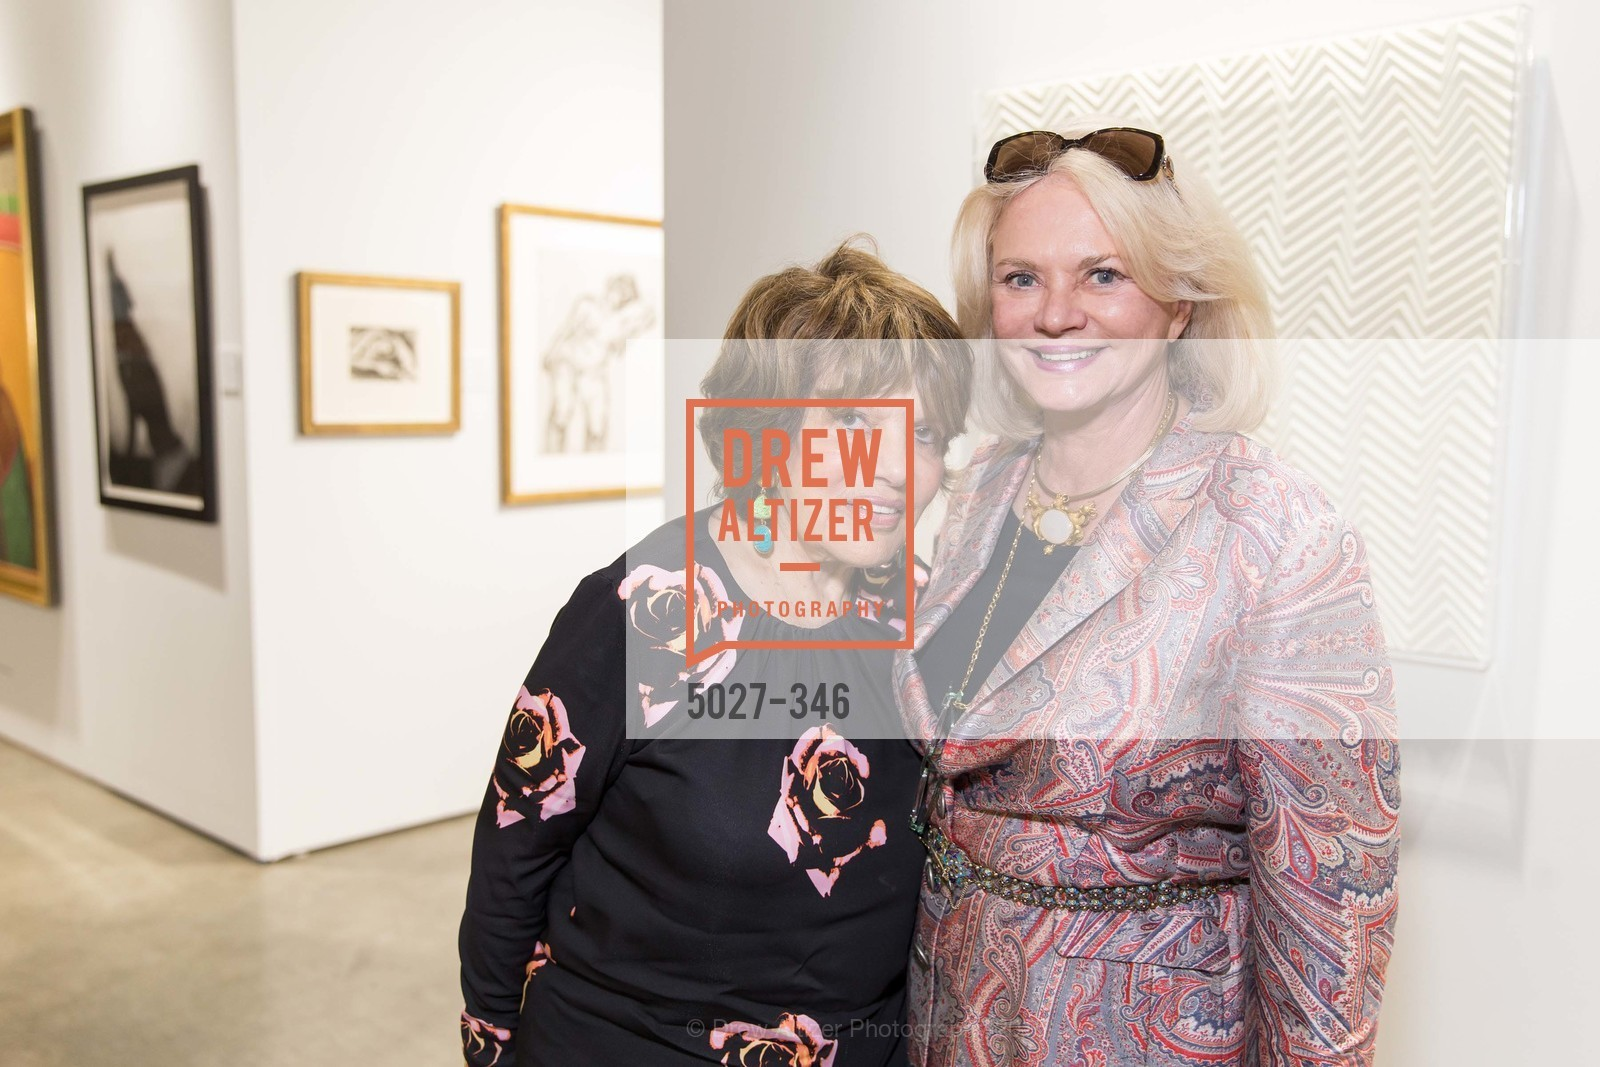 Lucretia Carney, Heide Betz, Art Miami Presents: Art Silicon Valley, San Mateo County Event Center. 1346 Saratoga Dr, October 8th, 2015,Drew Altizer, Drew Altizer Photography, full-service agency, private events, San Francisco photographer, photographer california